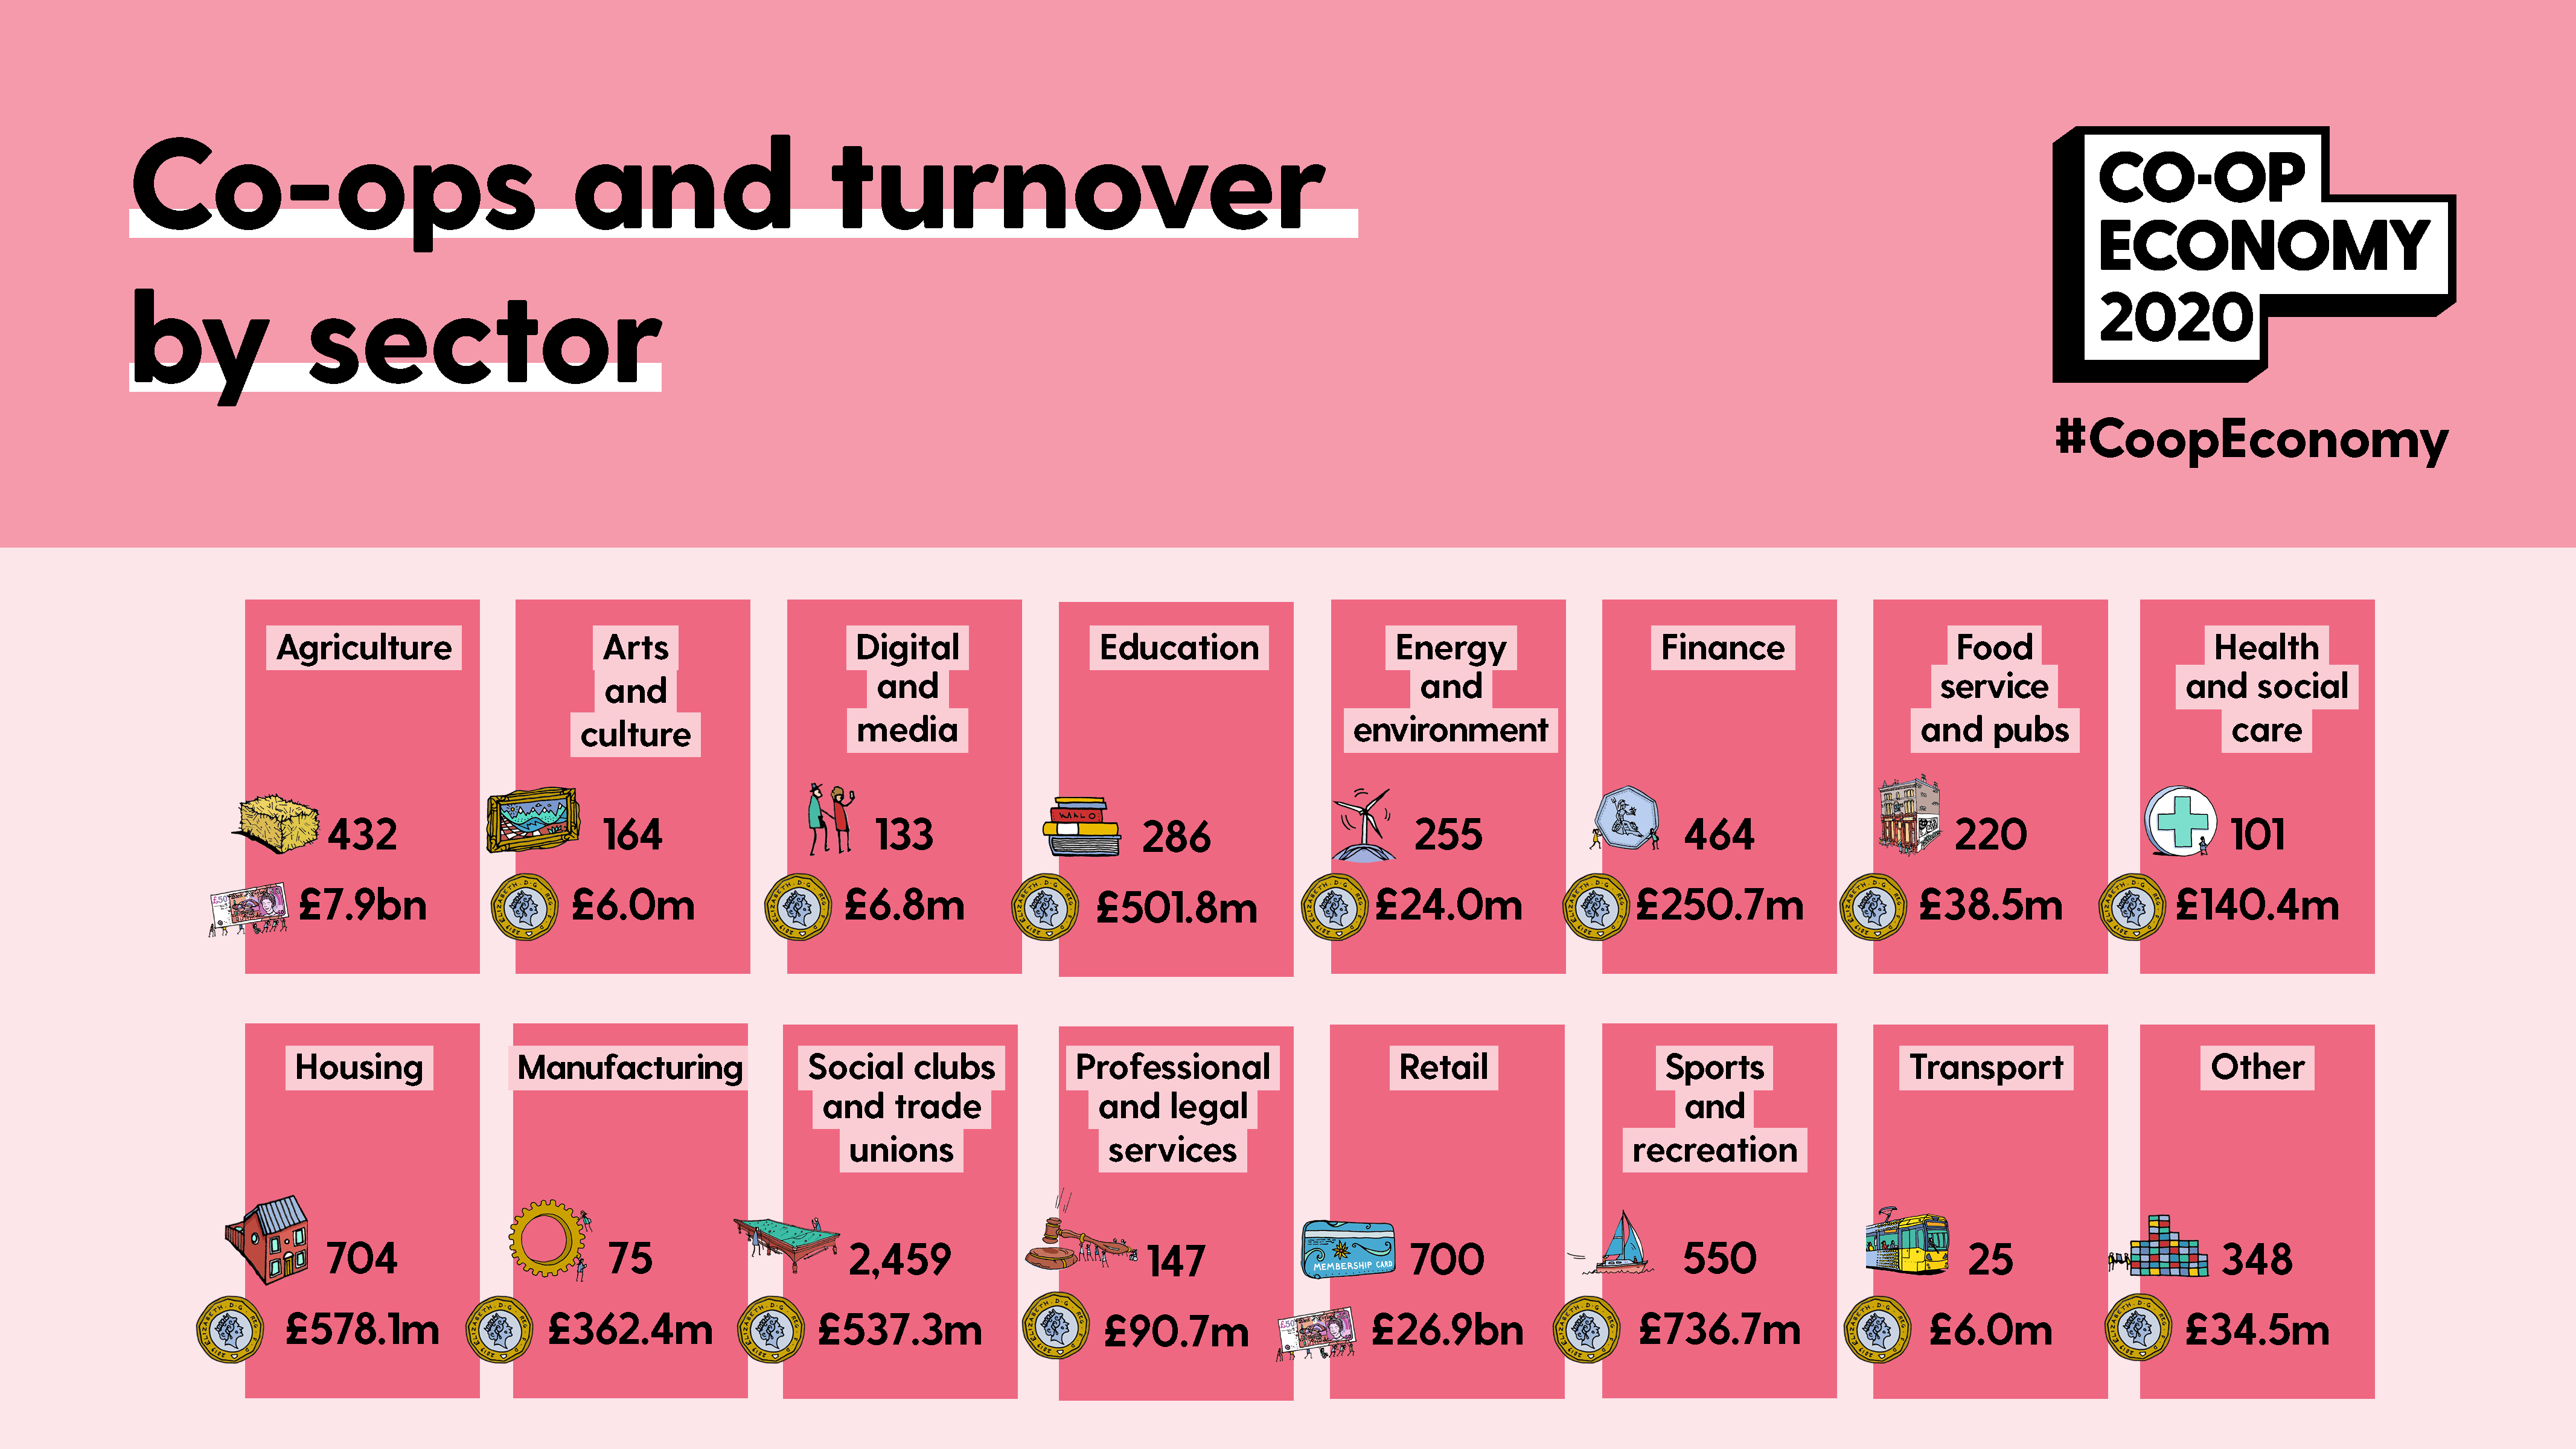 Co-ops by sector and turnover